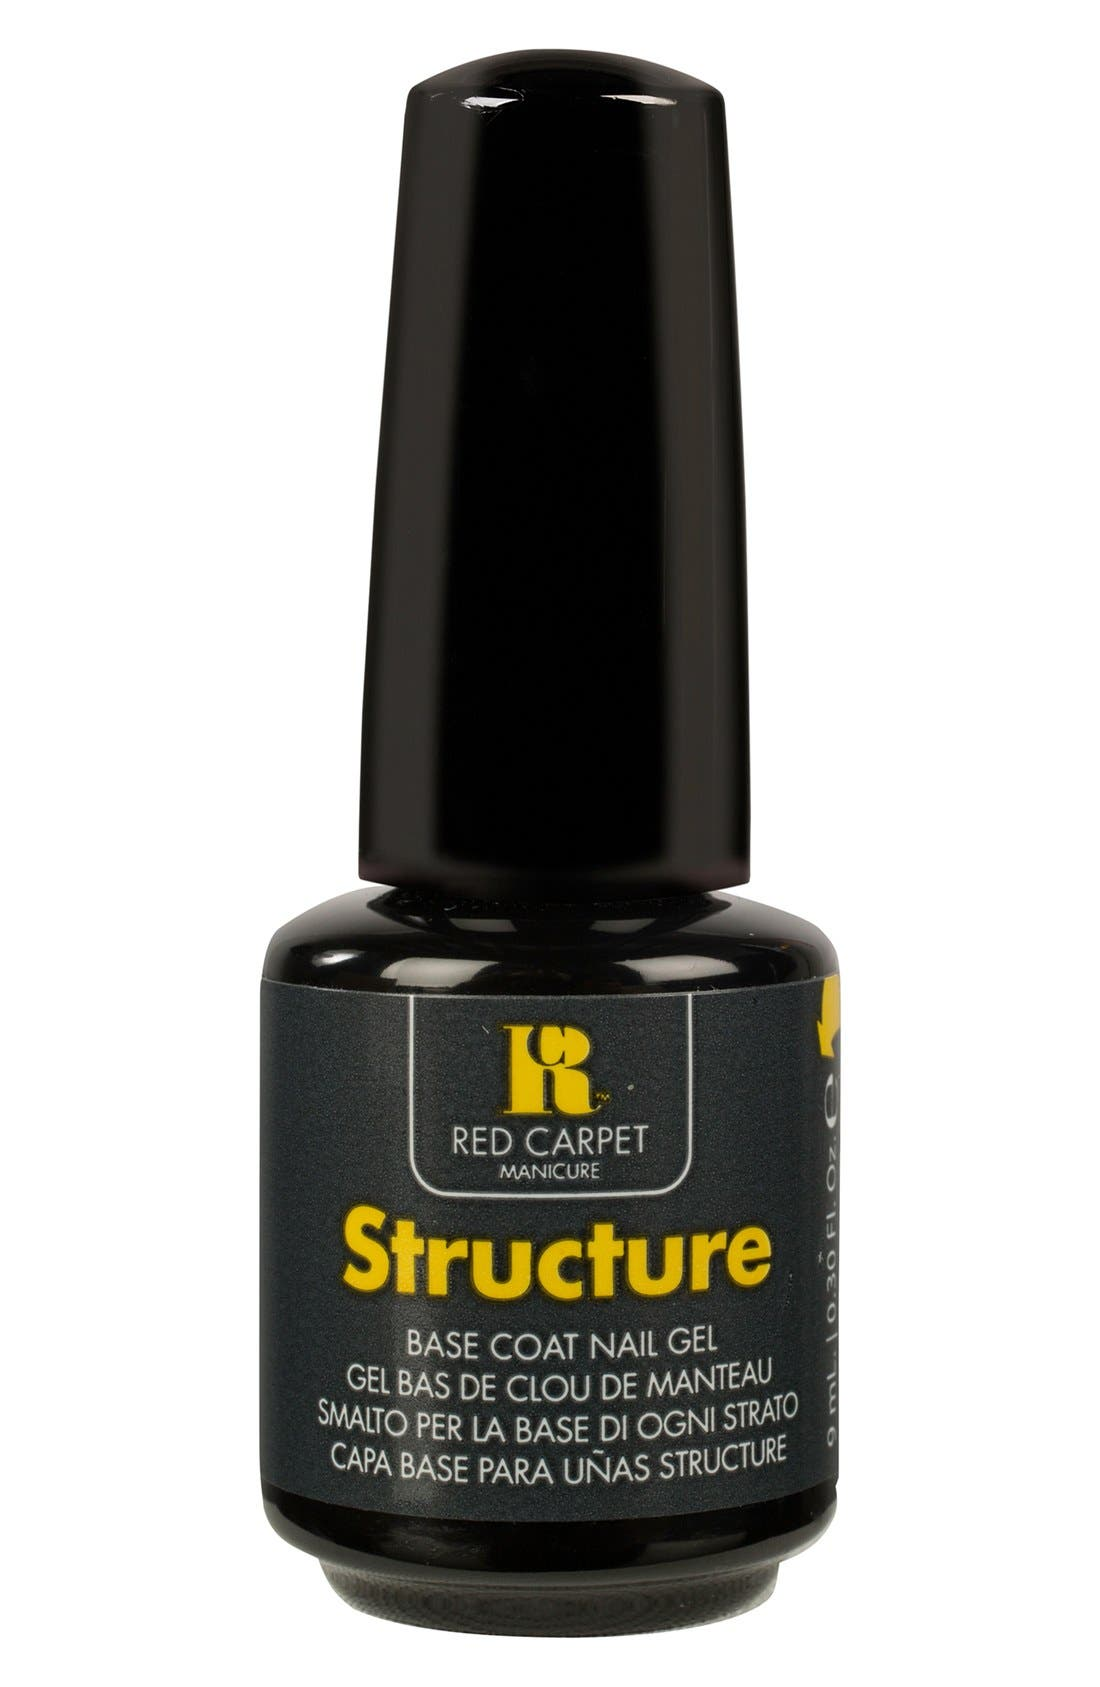 Red Carpet Manicure 'Structure' Base Coat Nail Gel